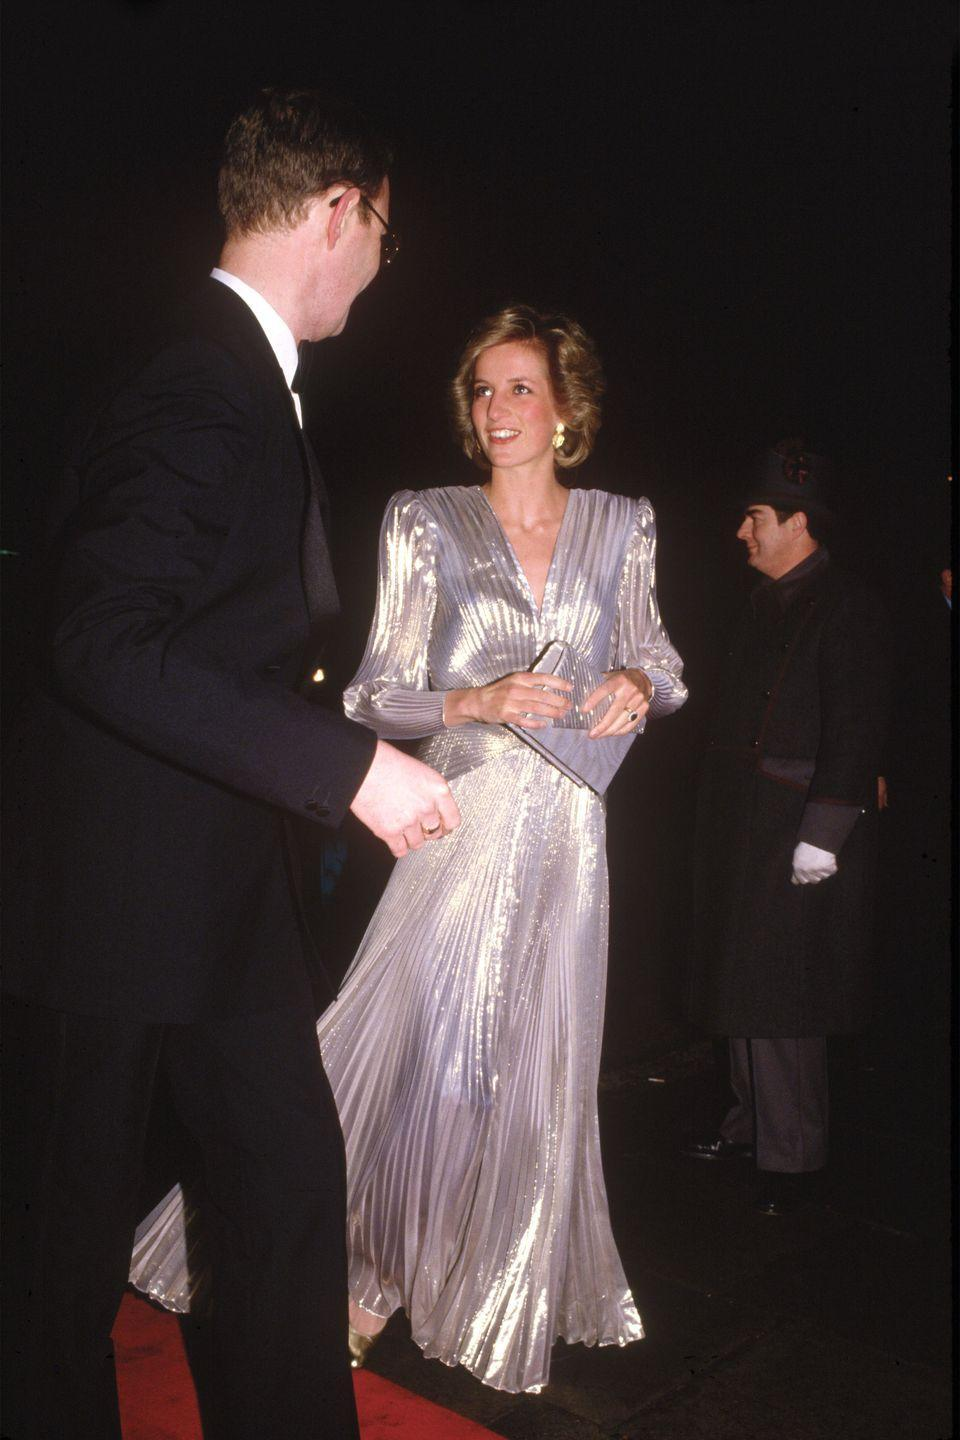 <p>In a metallic dress by Bruce Oldfield arriving at a fashion show at Grosvenor House Hotel in London.</p>